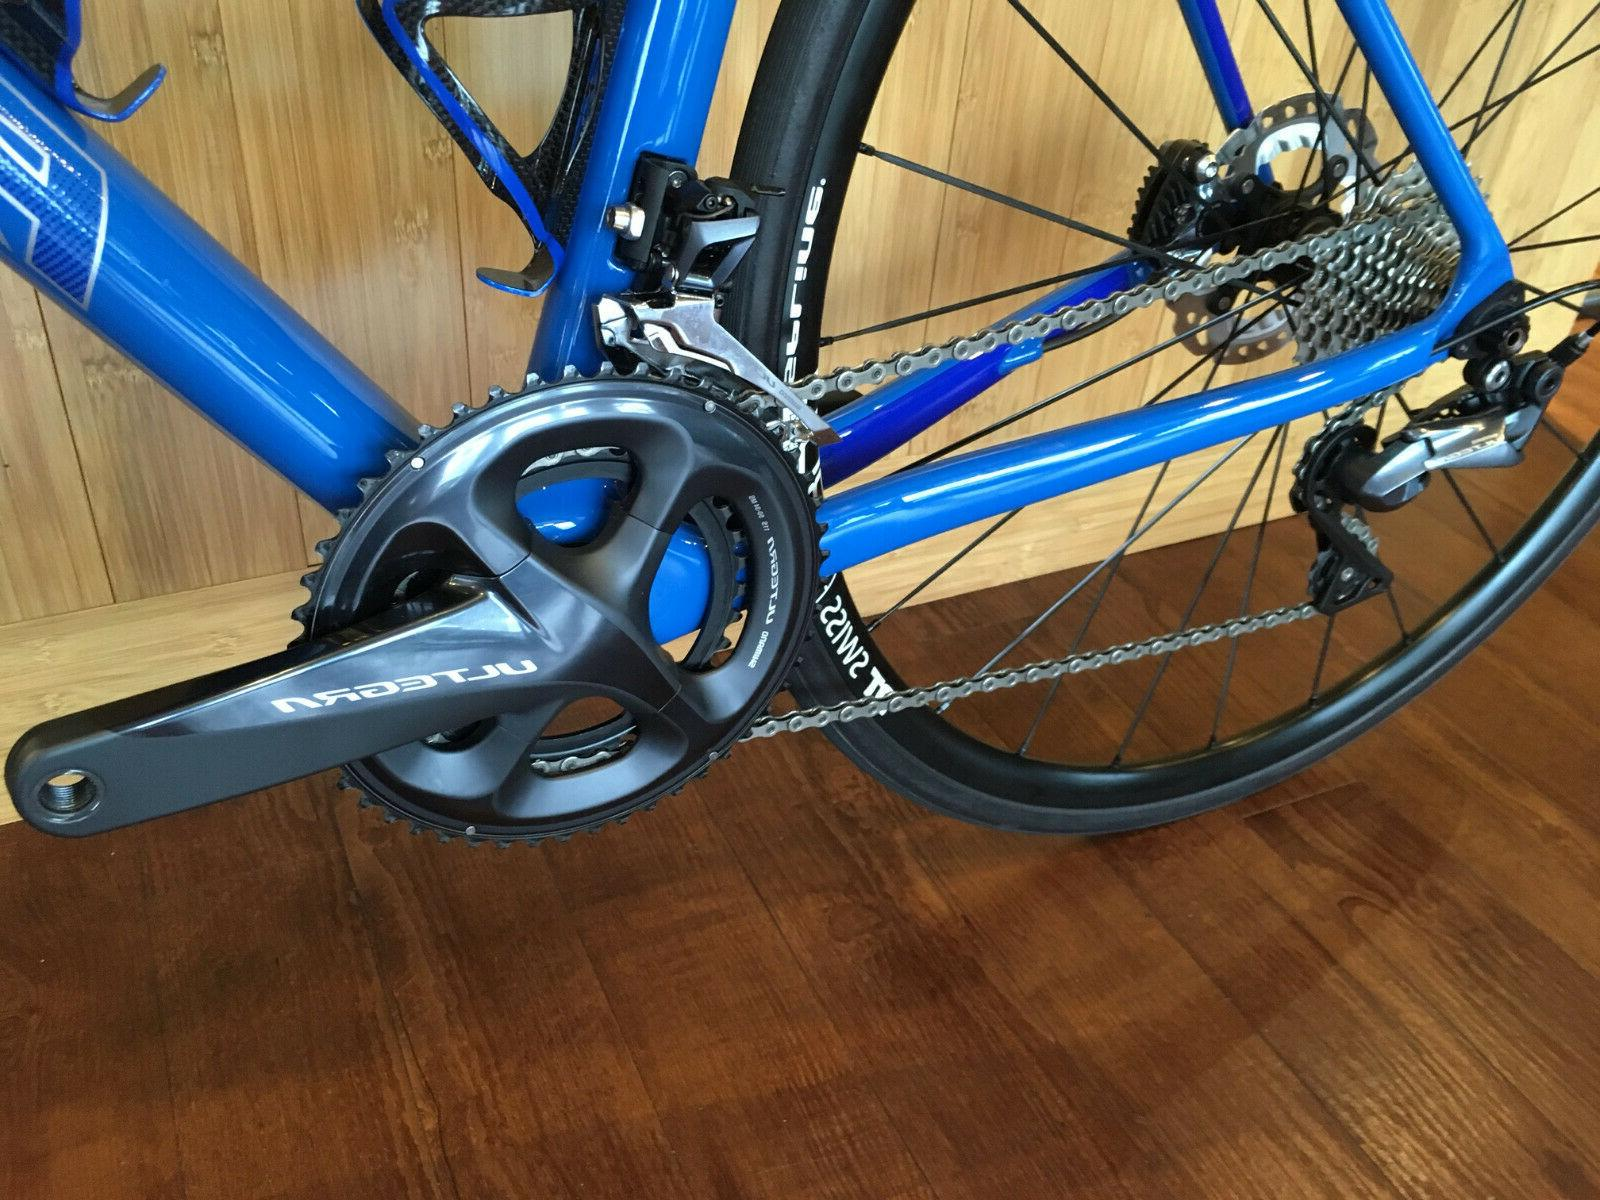 Parlee Carbon Road Bike Blue 8000 Small Demo Upgrades